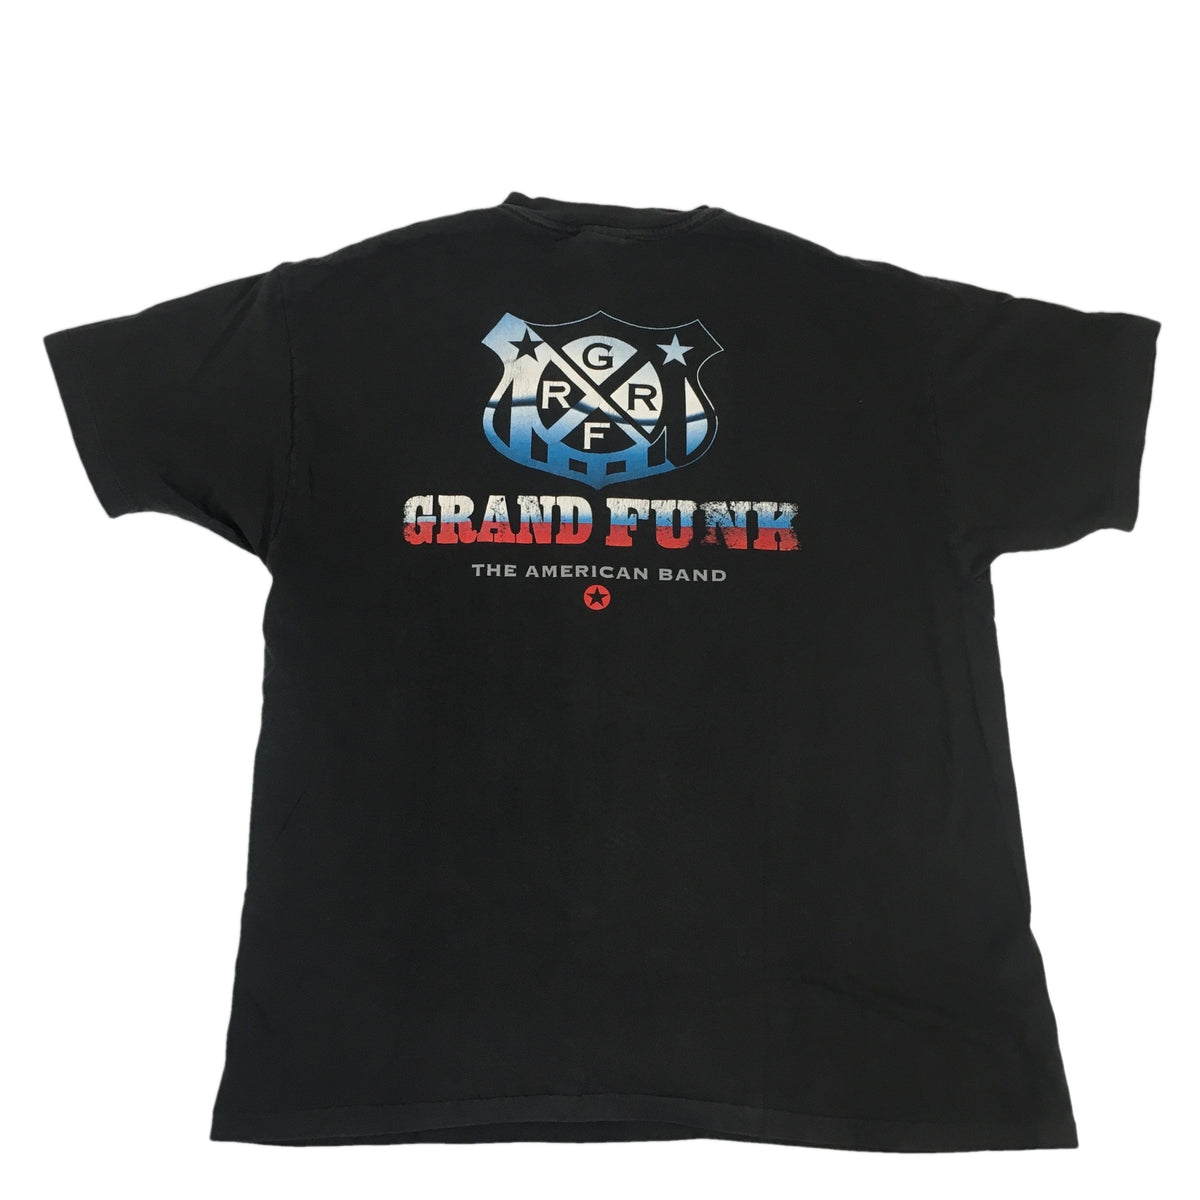 "Vintage Grand Funk Railroad ""The American Band"" T-Shirt"